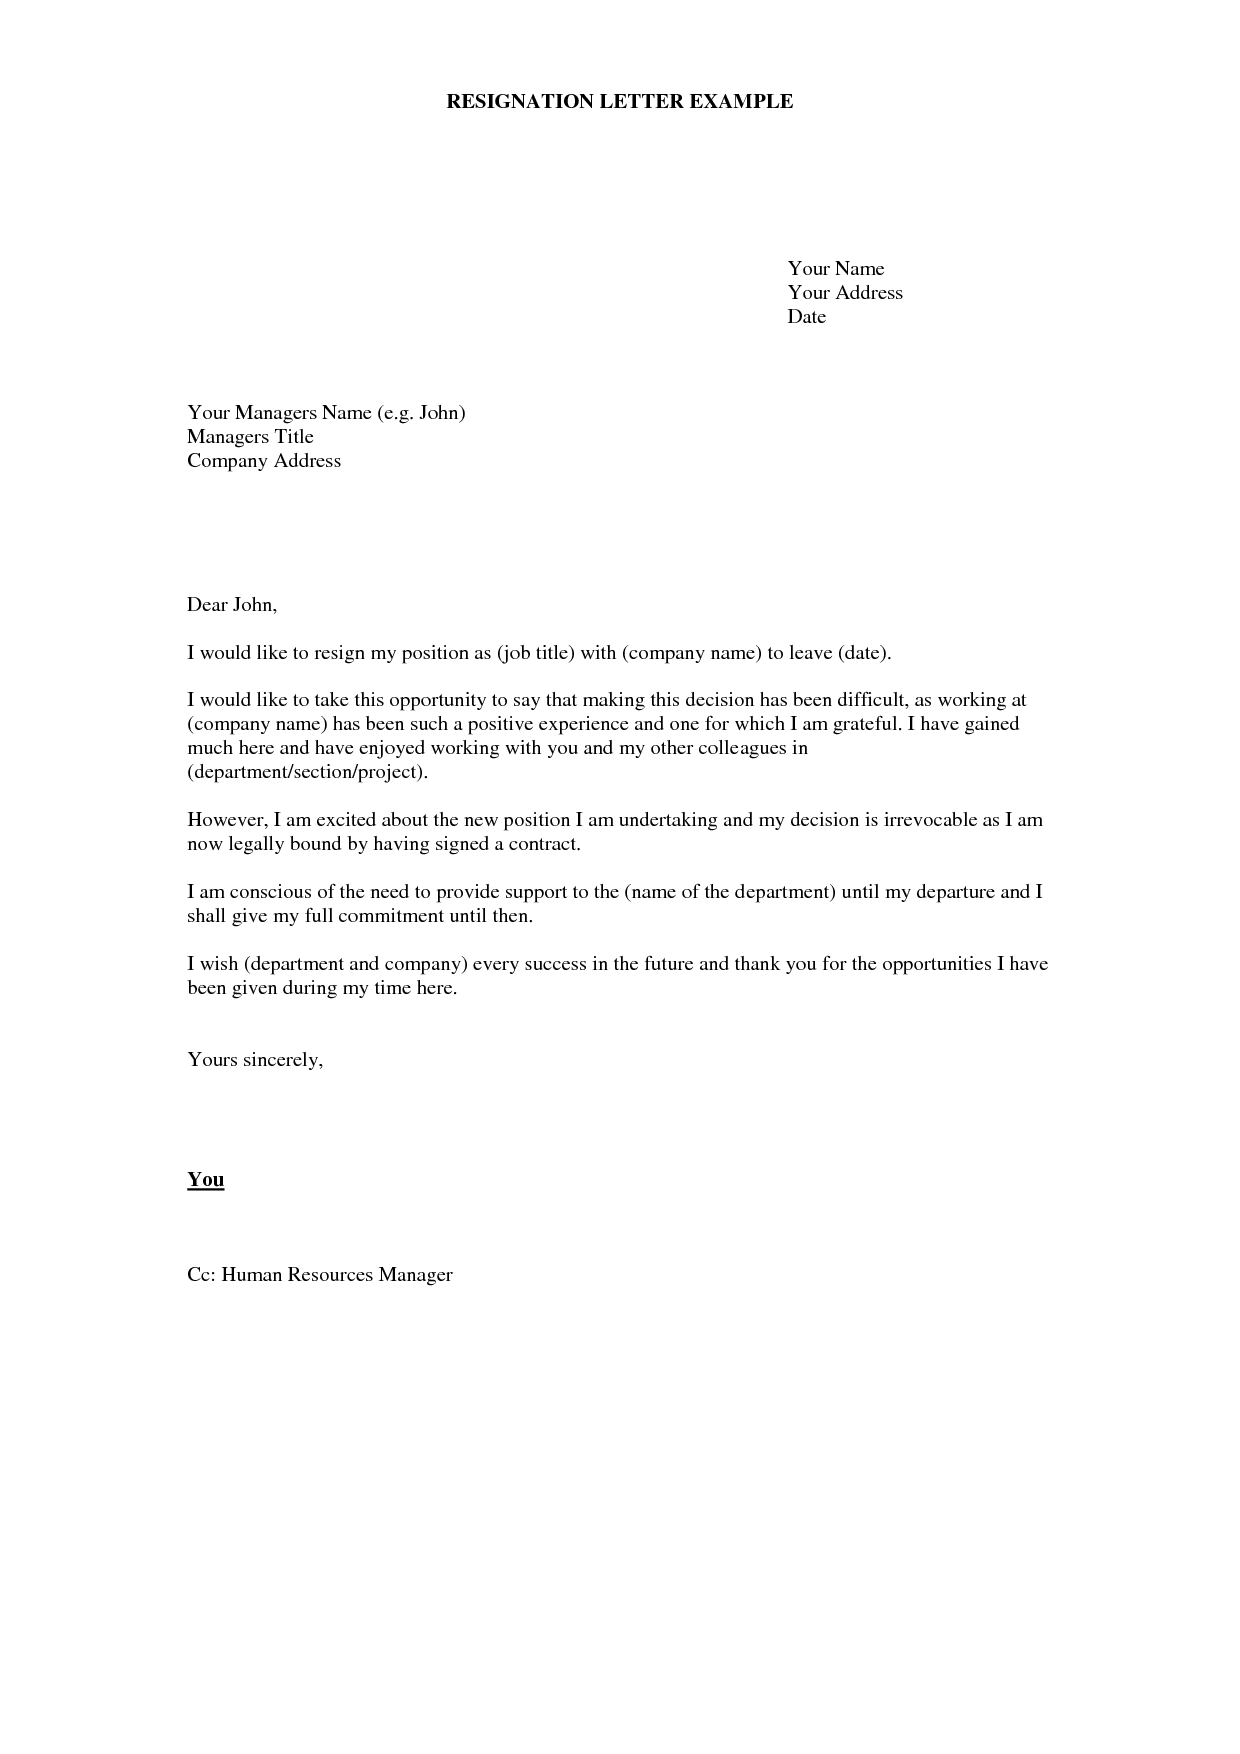 letter of resignation examples how to write a resignation letter fotolip rich image 630